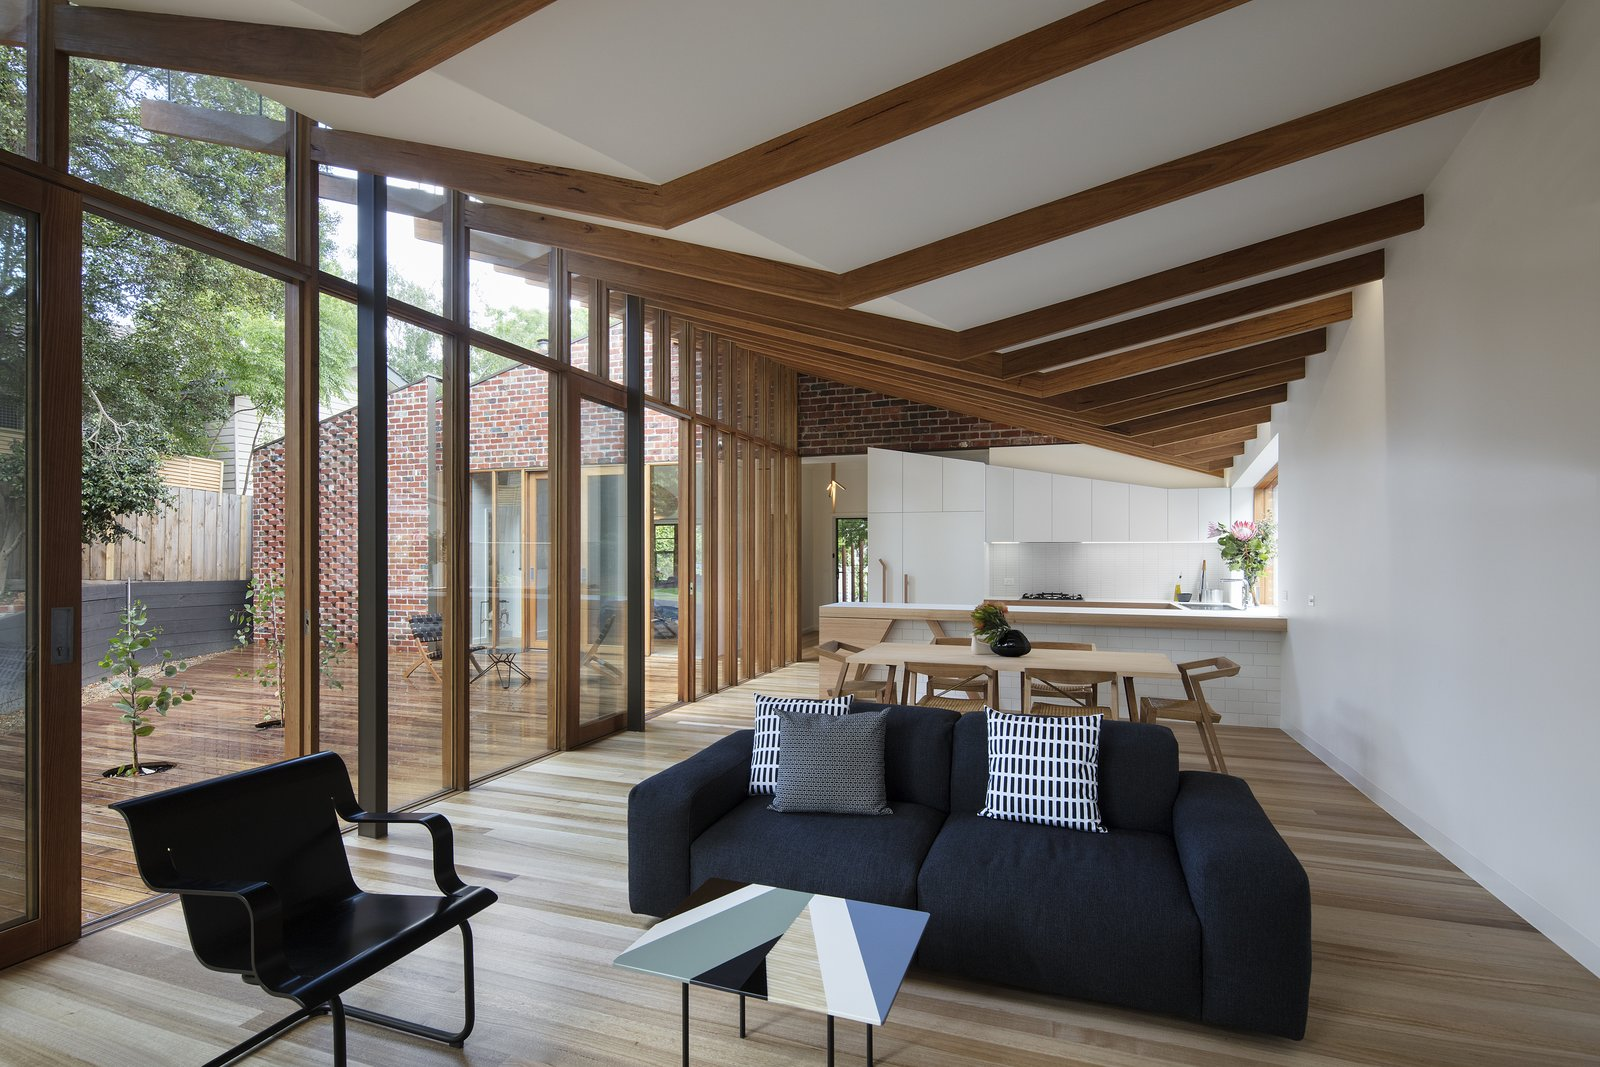 """Living Room, Chair, Sofa, Coffee Tables, and Medium Hardwood Floor """"The beams fold and taper back to the original roof line, which means each beam is unique, just like in nature,"""" Dunin says.     Photo 6 of 8 in A Backyard Eucalyptus Becomes the Muse For This Home Remodel"""